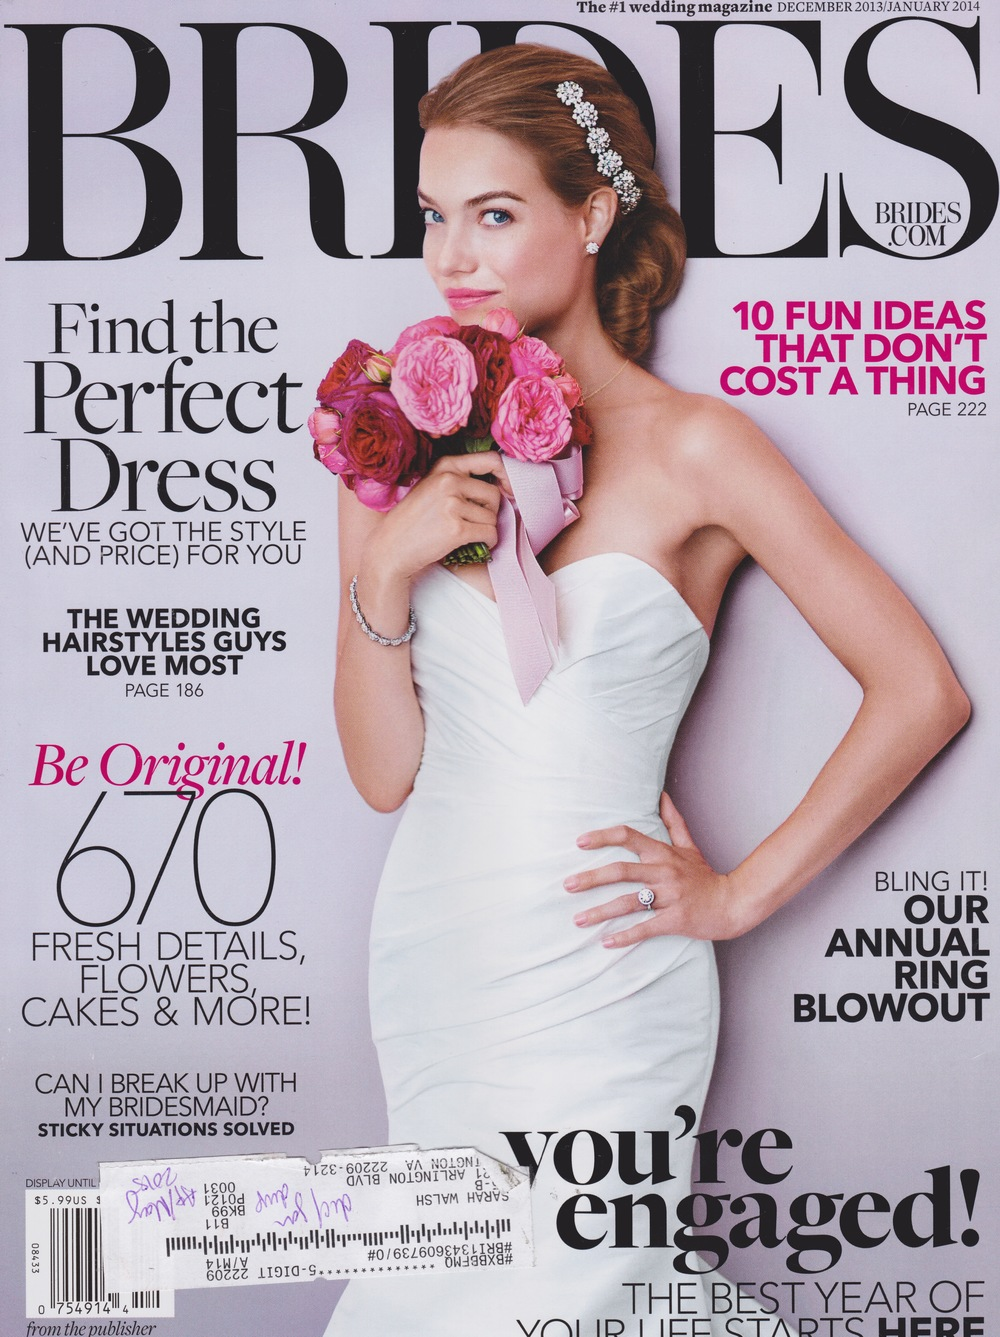 Brides Cover 11.13.jpeg